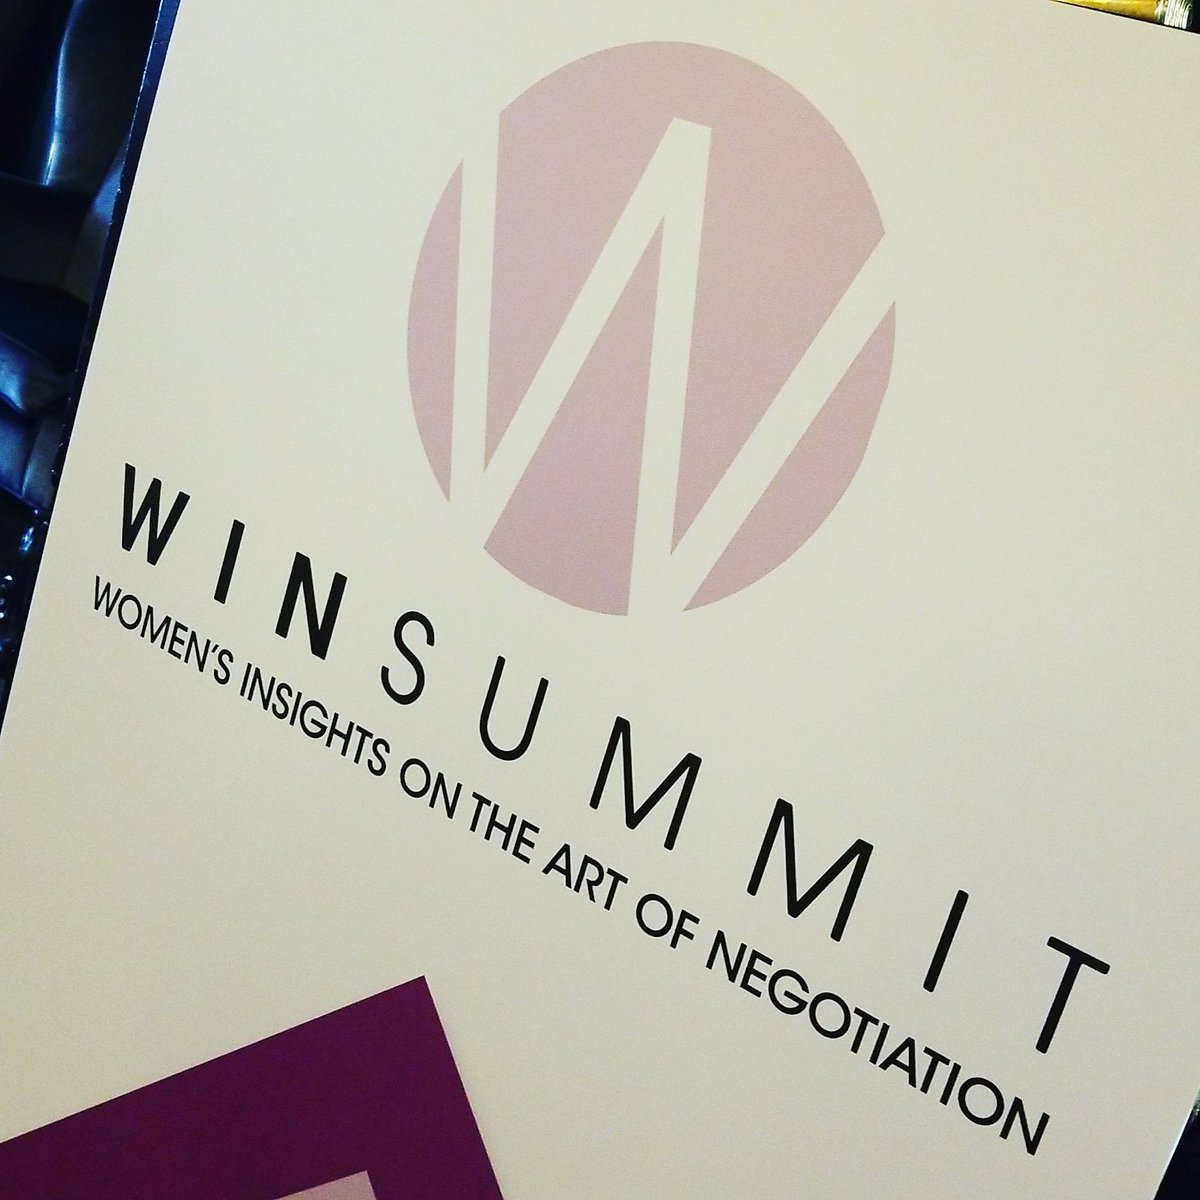 test Twitter Media - RT @TheWINSummit: Ready for a full day of Womens Insights into the Art of Negotiation.  #winsummit #winsummit2018 https://t.co/O6zy6Xb3gY